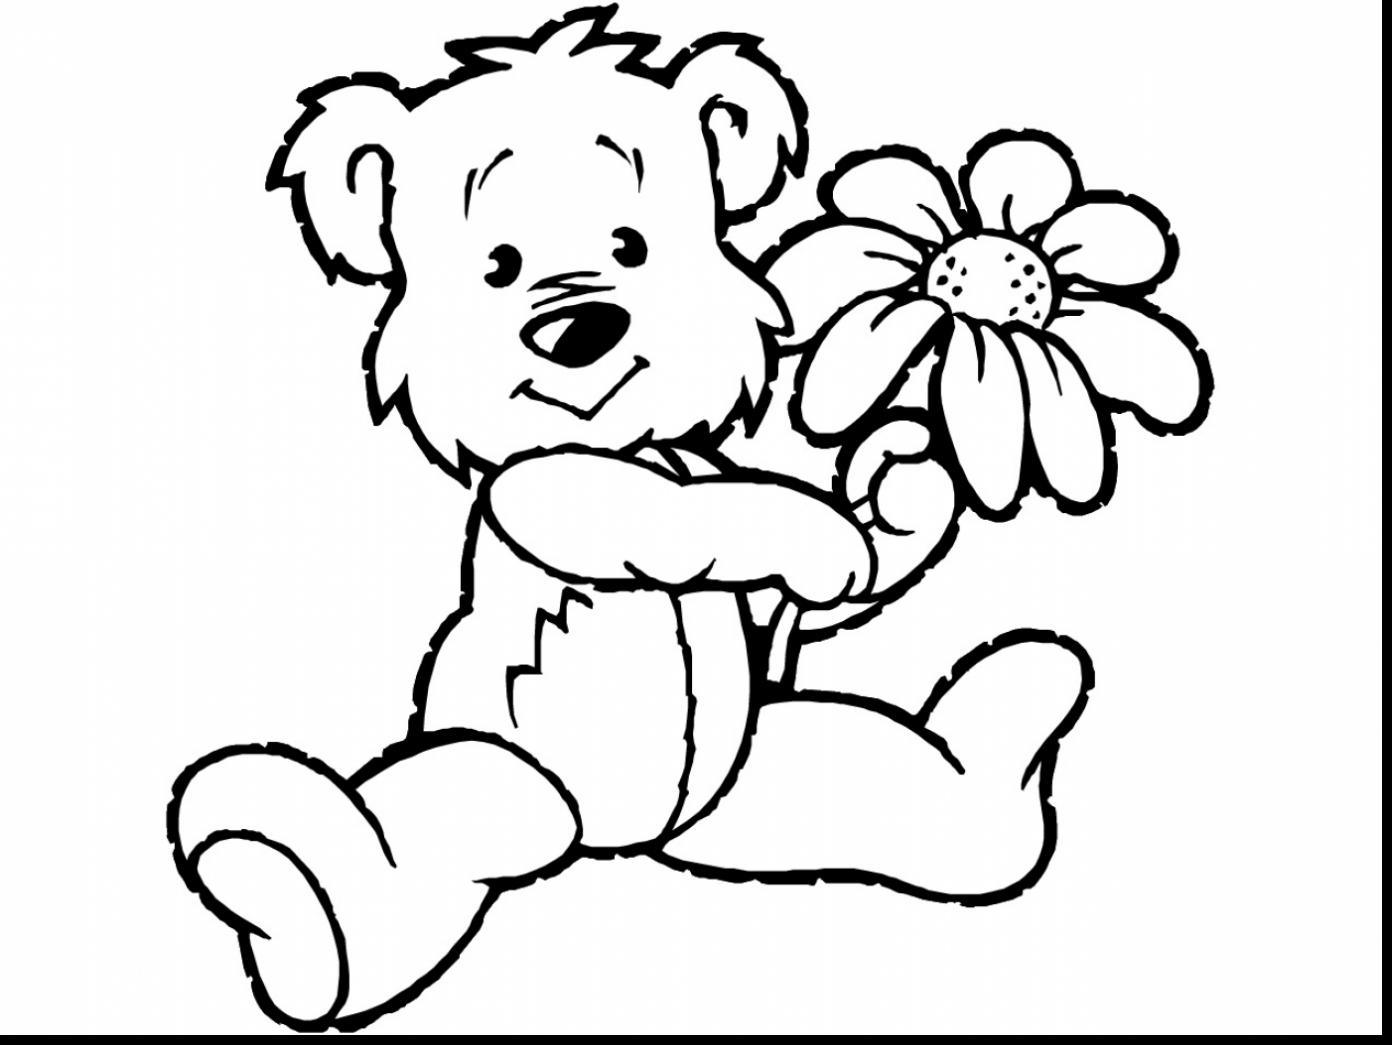 1392x1045 Excellent Indian Jasmine Flower Coloring Pages With Flowers